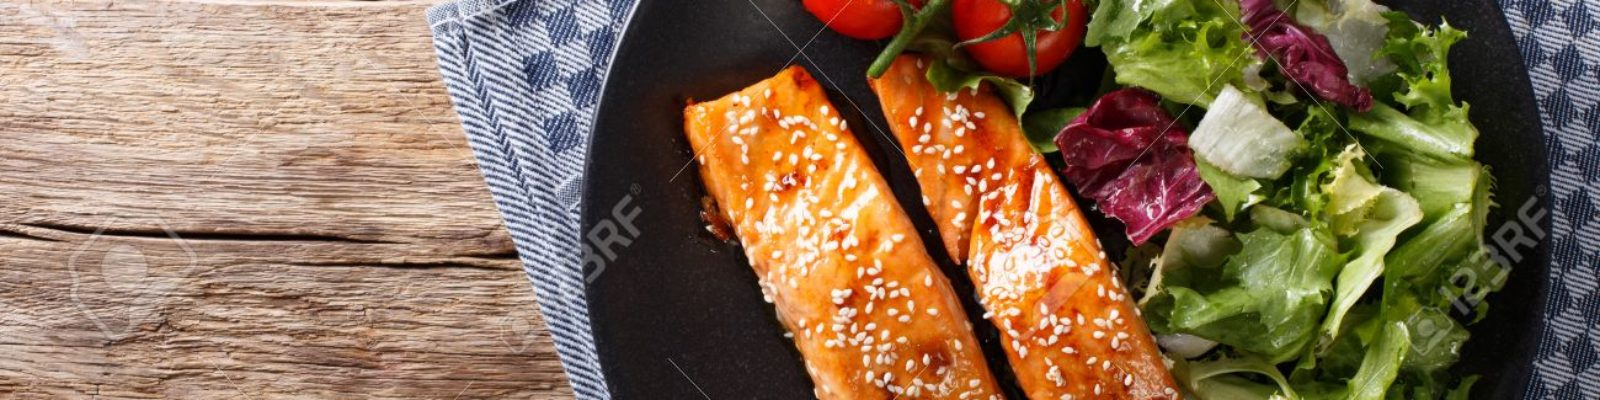 cropped-76503978-Salmon-with-sesame-seeds-in-Asian-style-and-fresh-salad-close-up-on-a-plate-horizontal-view-from-abo-Stock-Photo-1.jpg